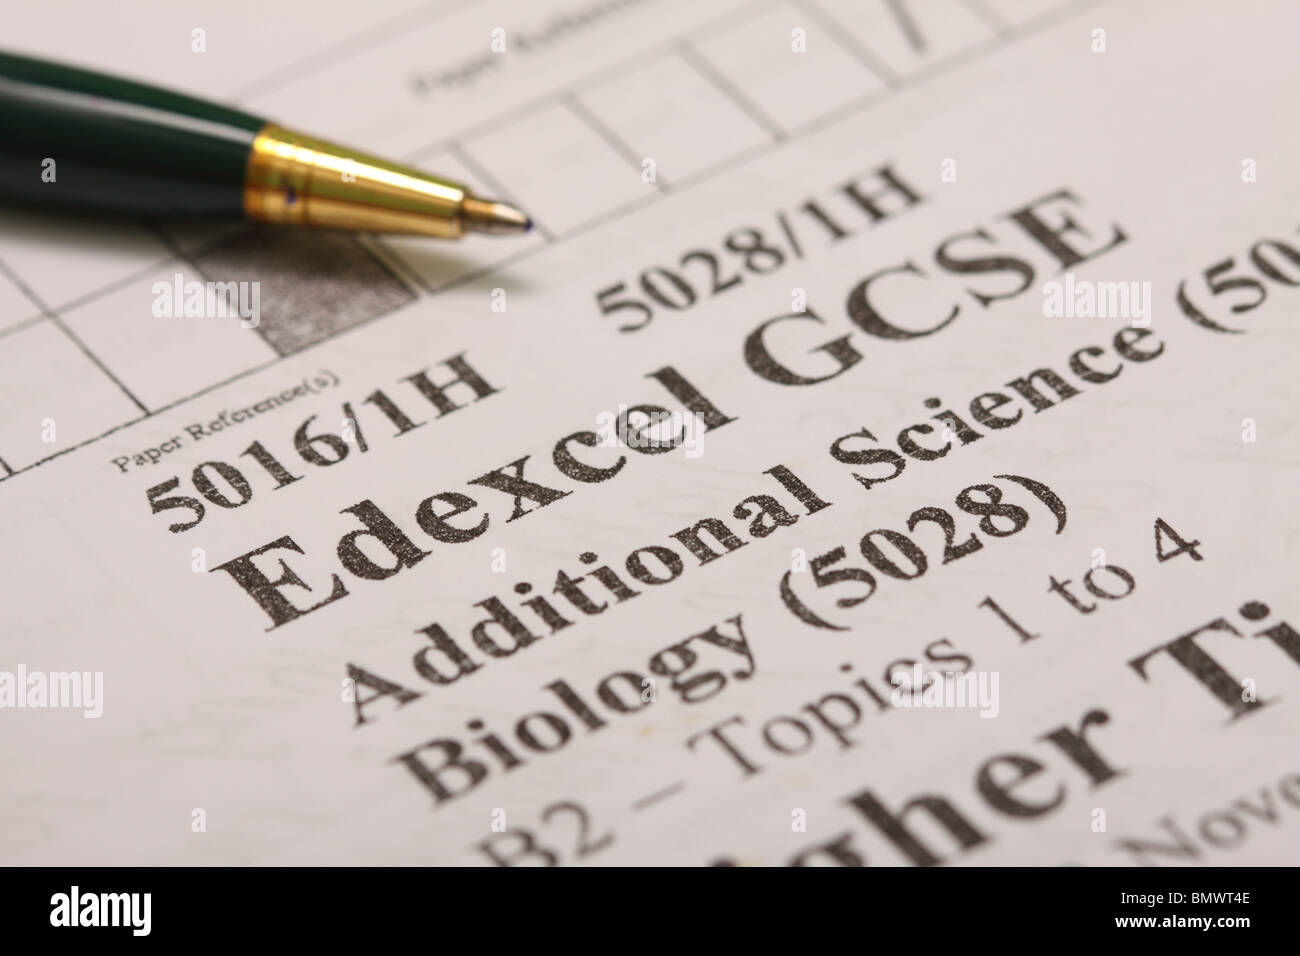 Edexcel GCSE exam paper Additional Science Biology Higher Tier grade - Stock Image